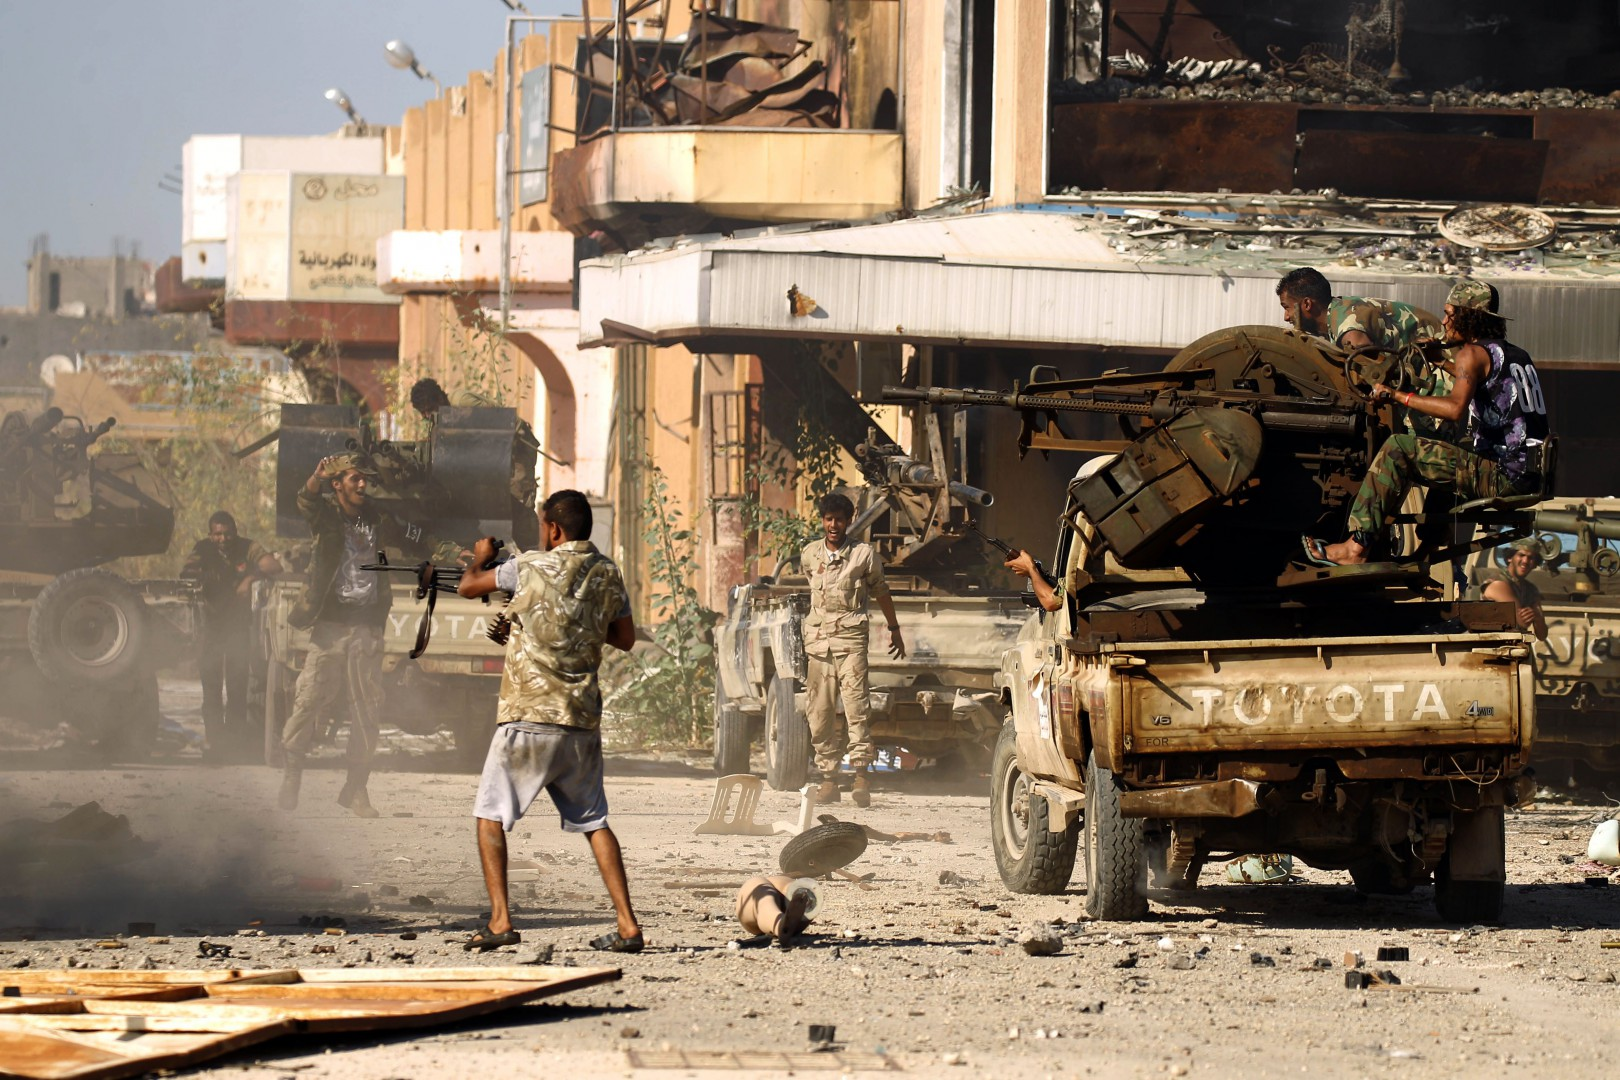 (FILES) In this file photo taken on May 20, 2017, Members of the Libyan National Army (LNA), also known as the forces loyal to Marshal Khalifa Haftar, clash with jihadists in Benghazi's Al-Hout market area. - French warplanes on February 3, 2019 struck twice to halt an armed group that crossed into northern Chad from Libya in a column of 40 pickup trucks, the French military said, adding it acted at Chad's request. (Photo by Abdullah DOMA / AFP)